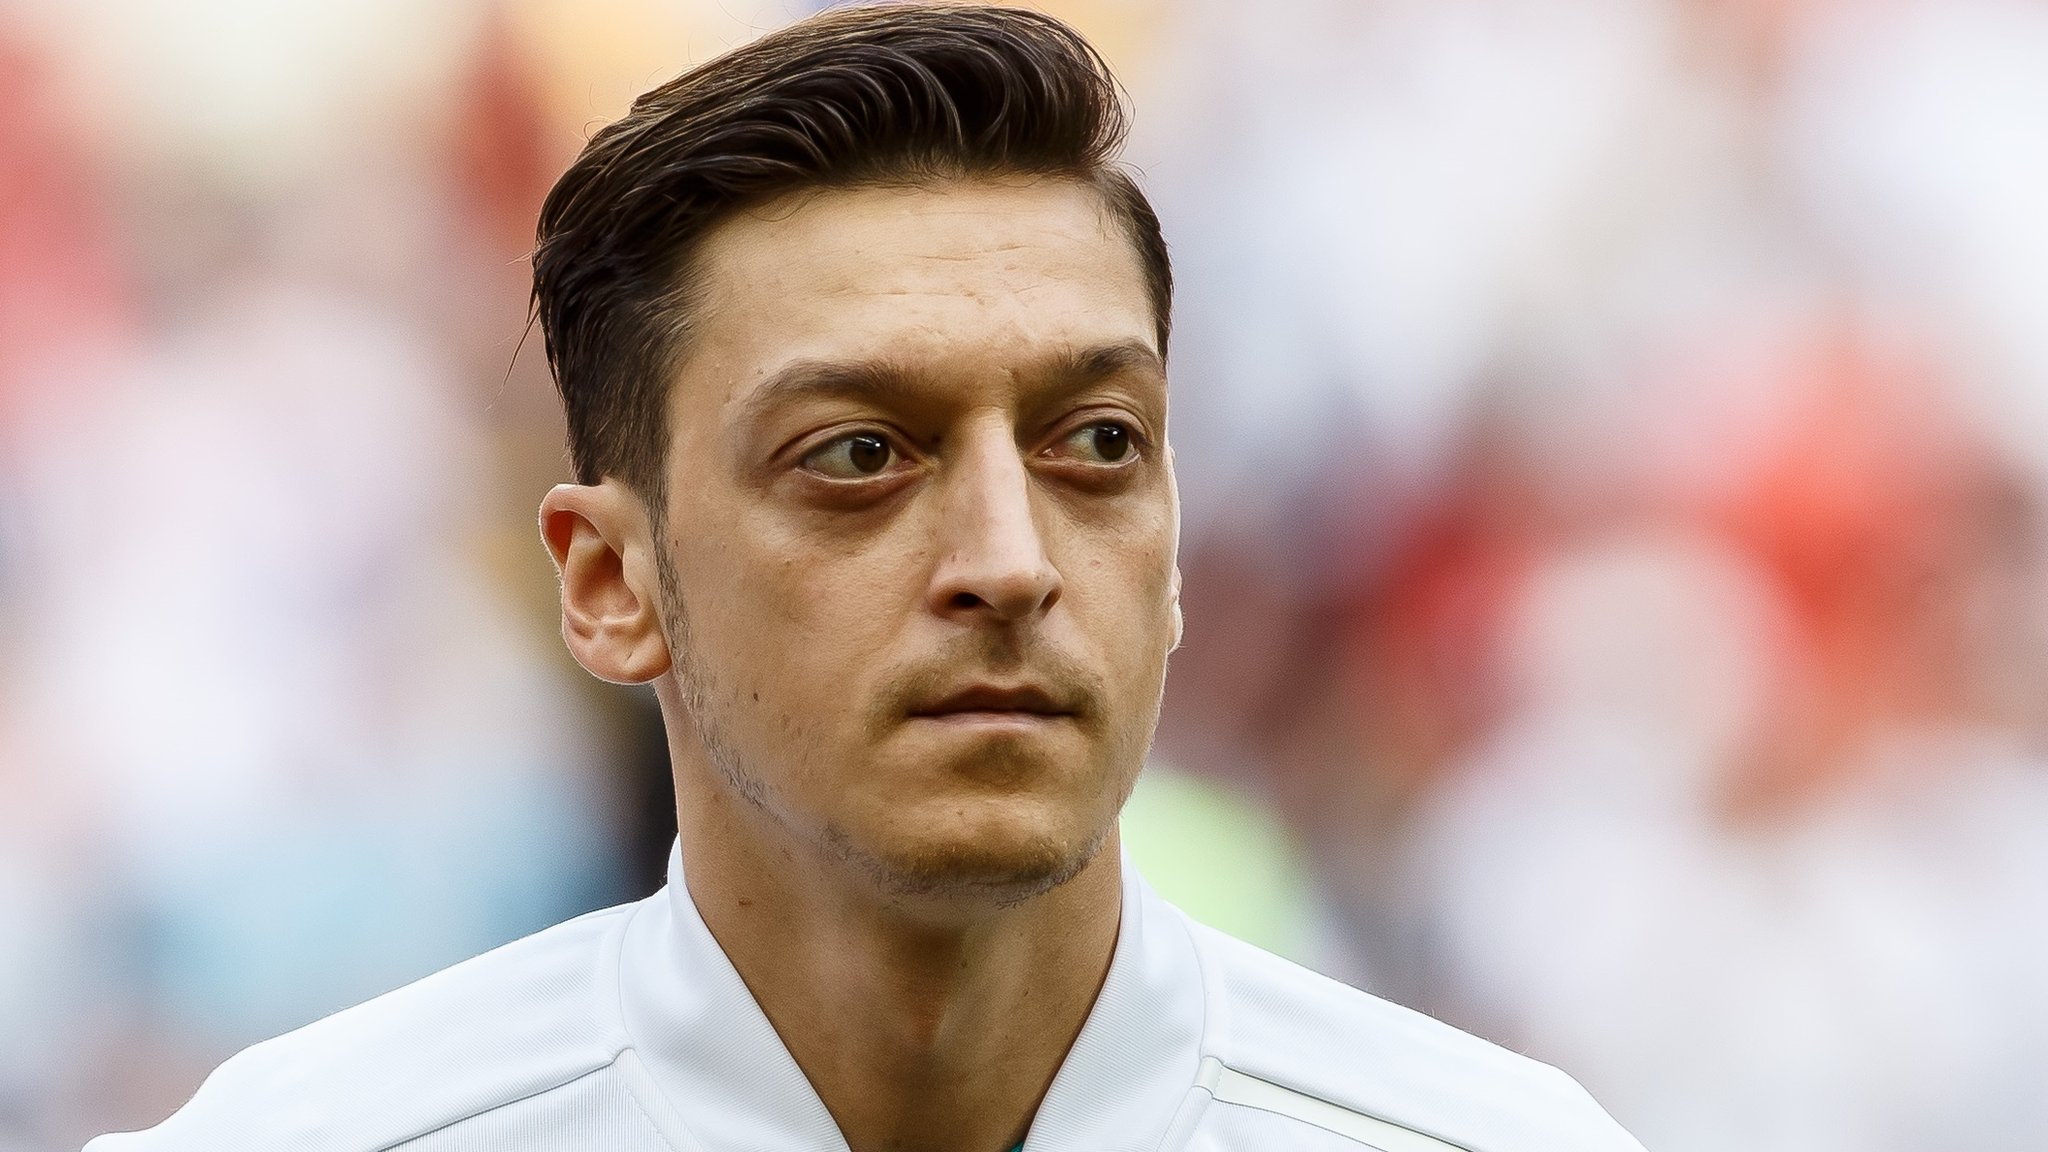 German FA 'emphatically rejects' Ozil's racism allegation